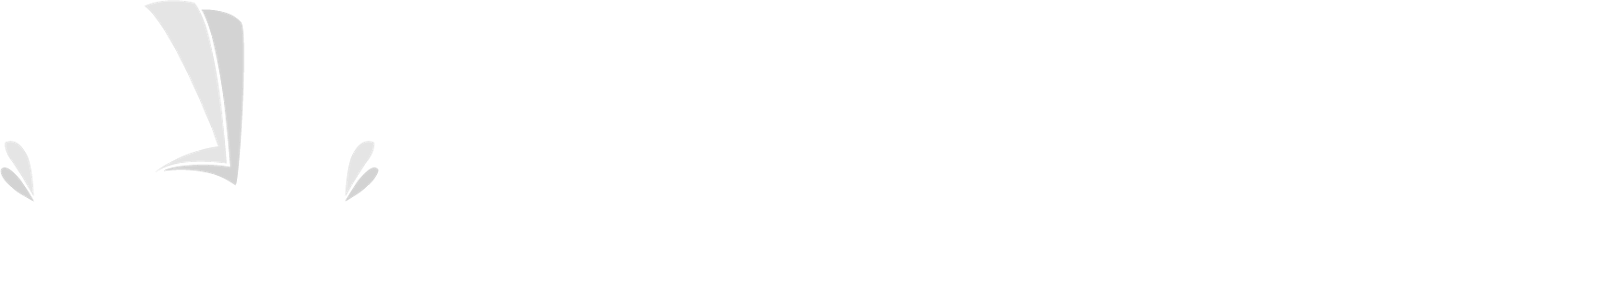 Best Personal Finance, Law, Education Blog - Finance Care Online | Finance Guest Post